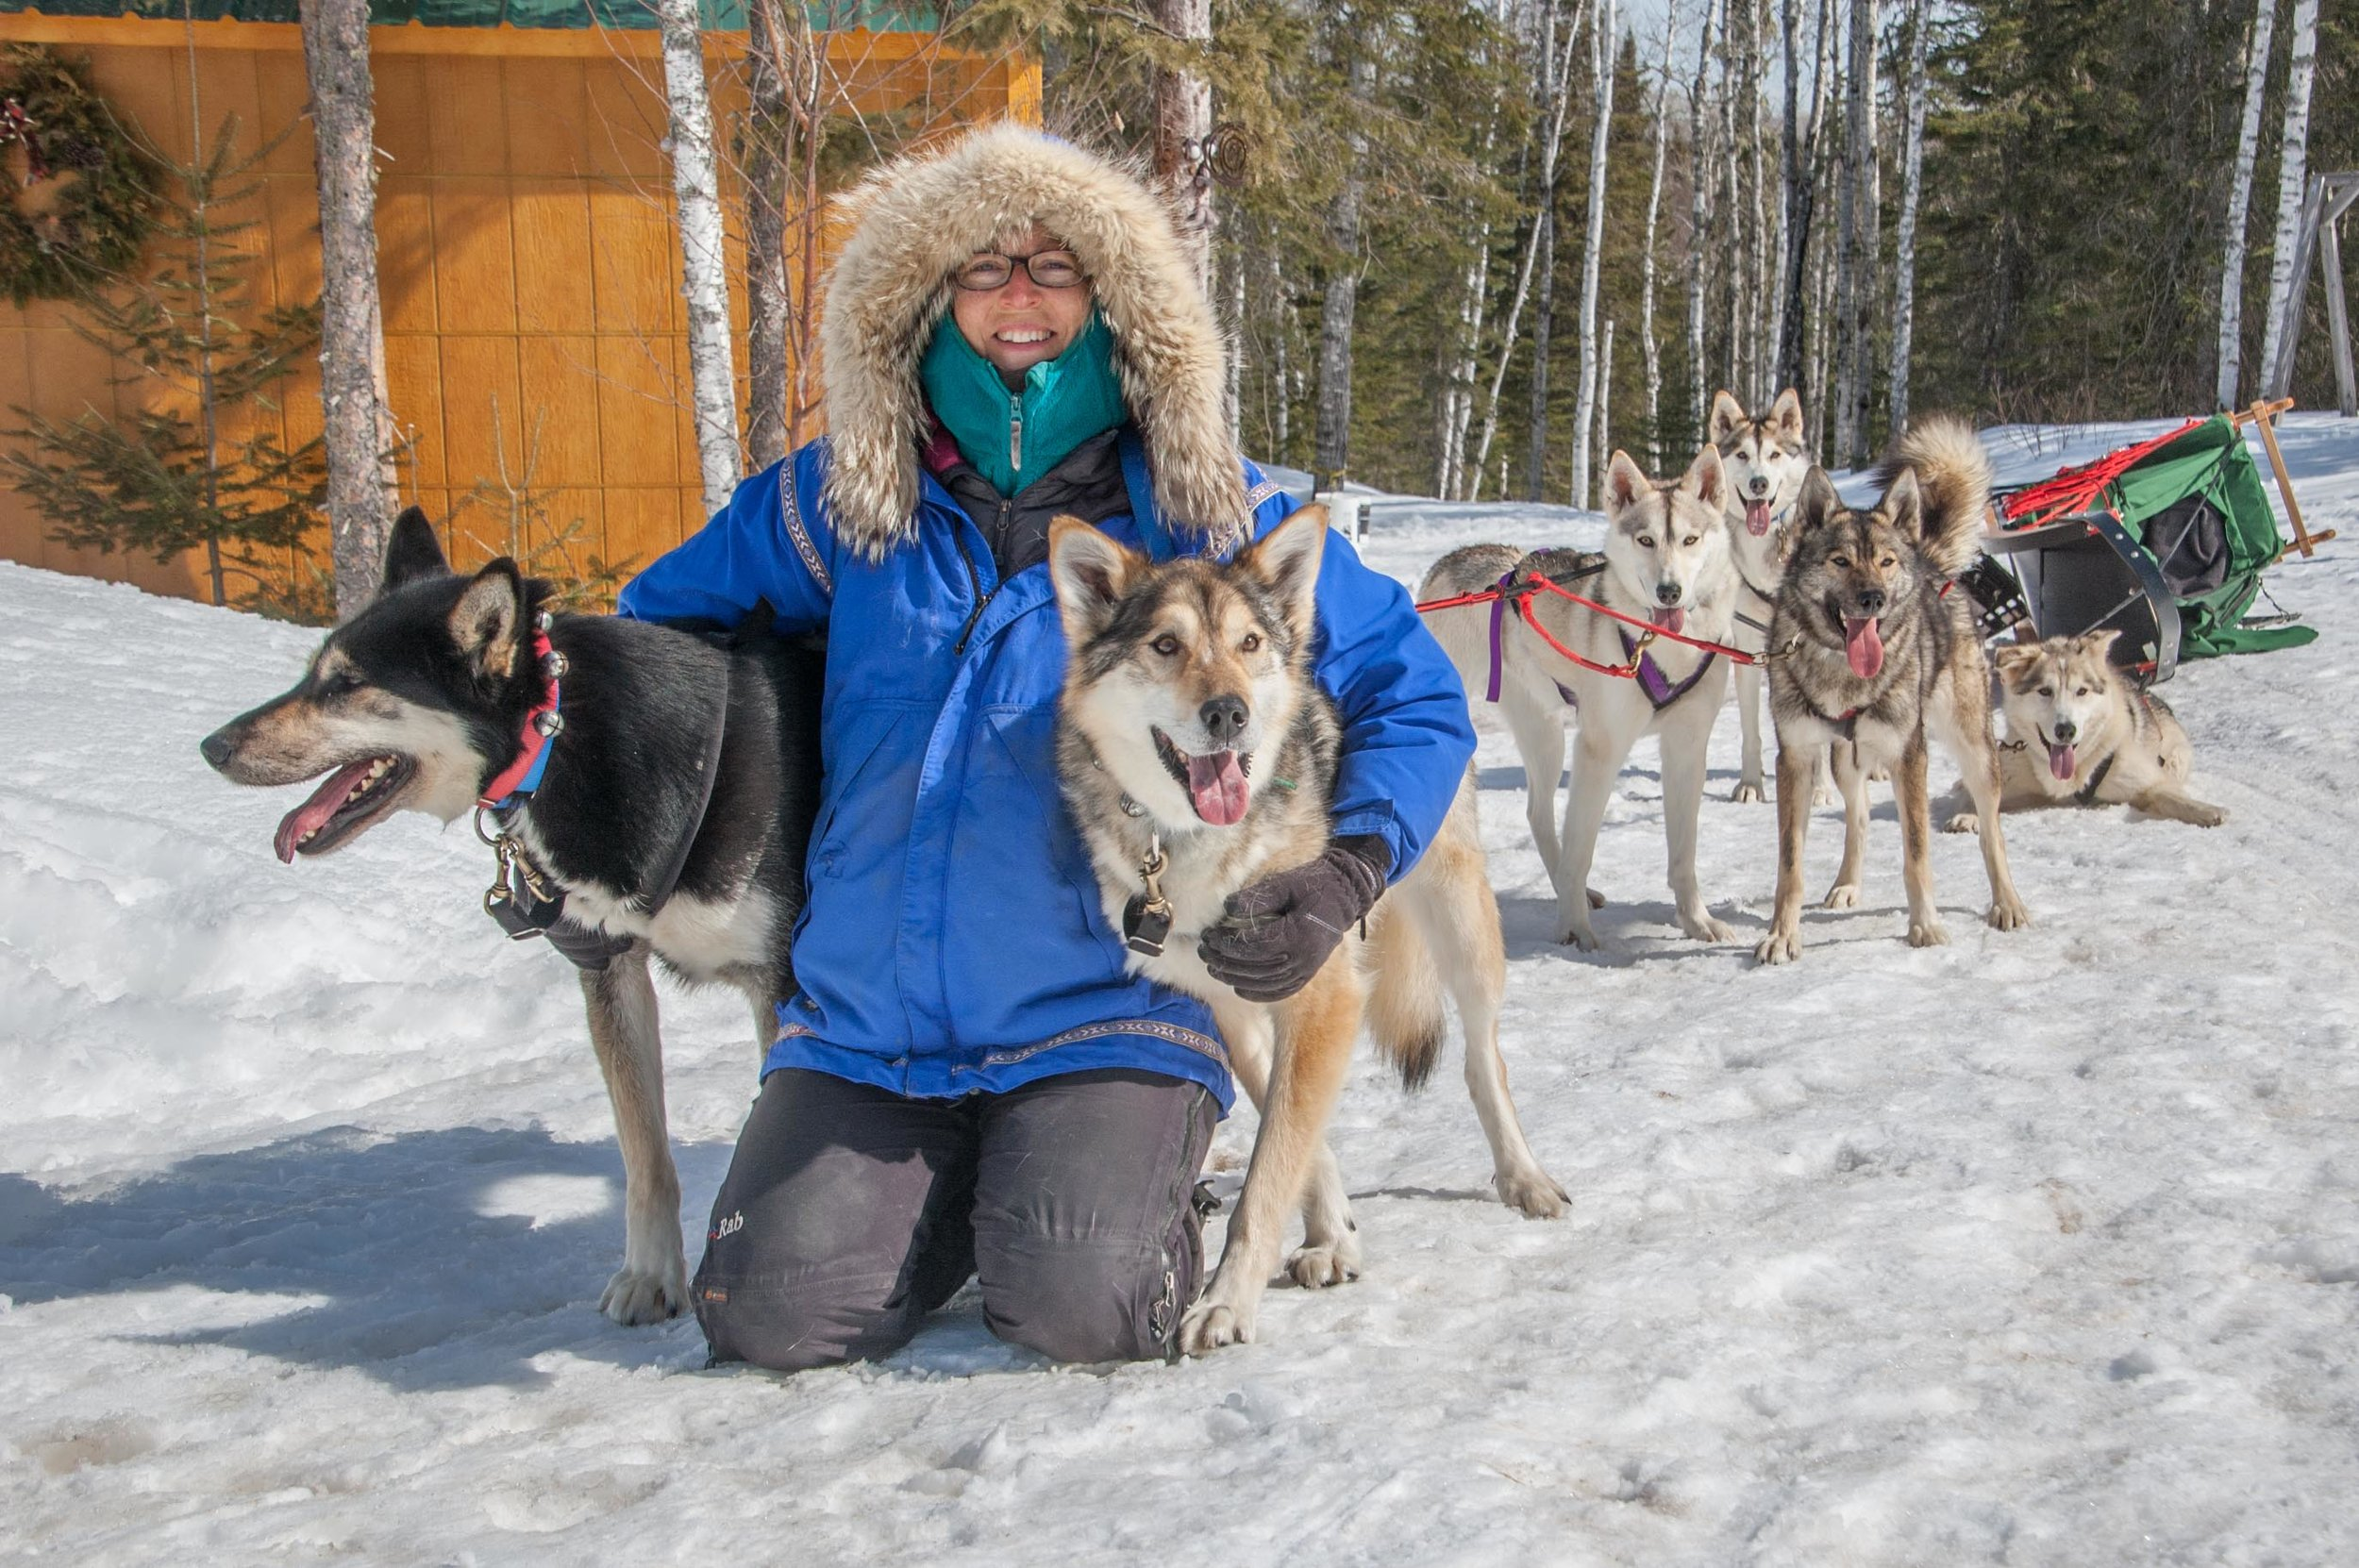 Newman and her smiling huskies